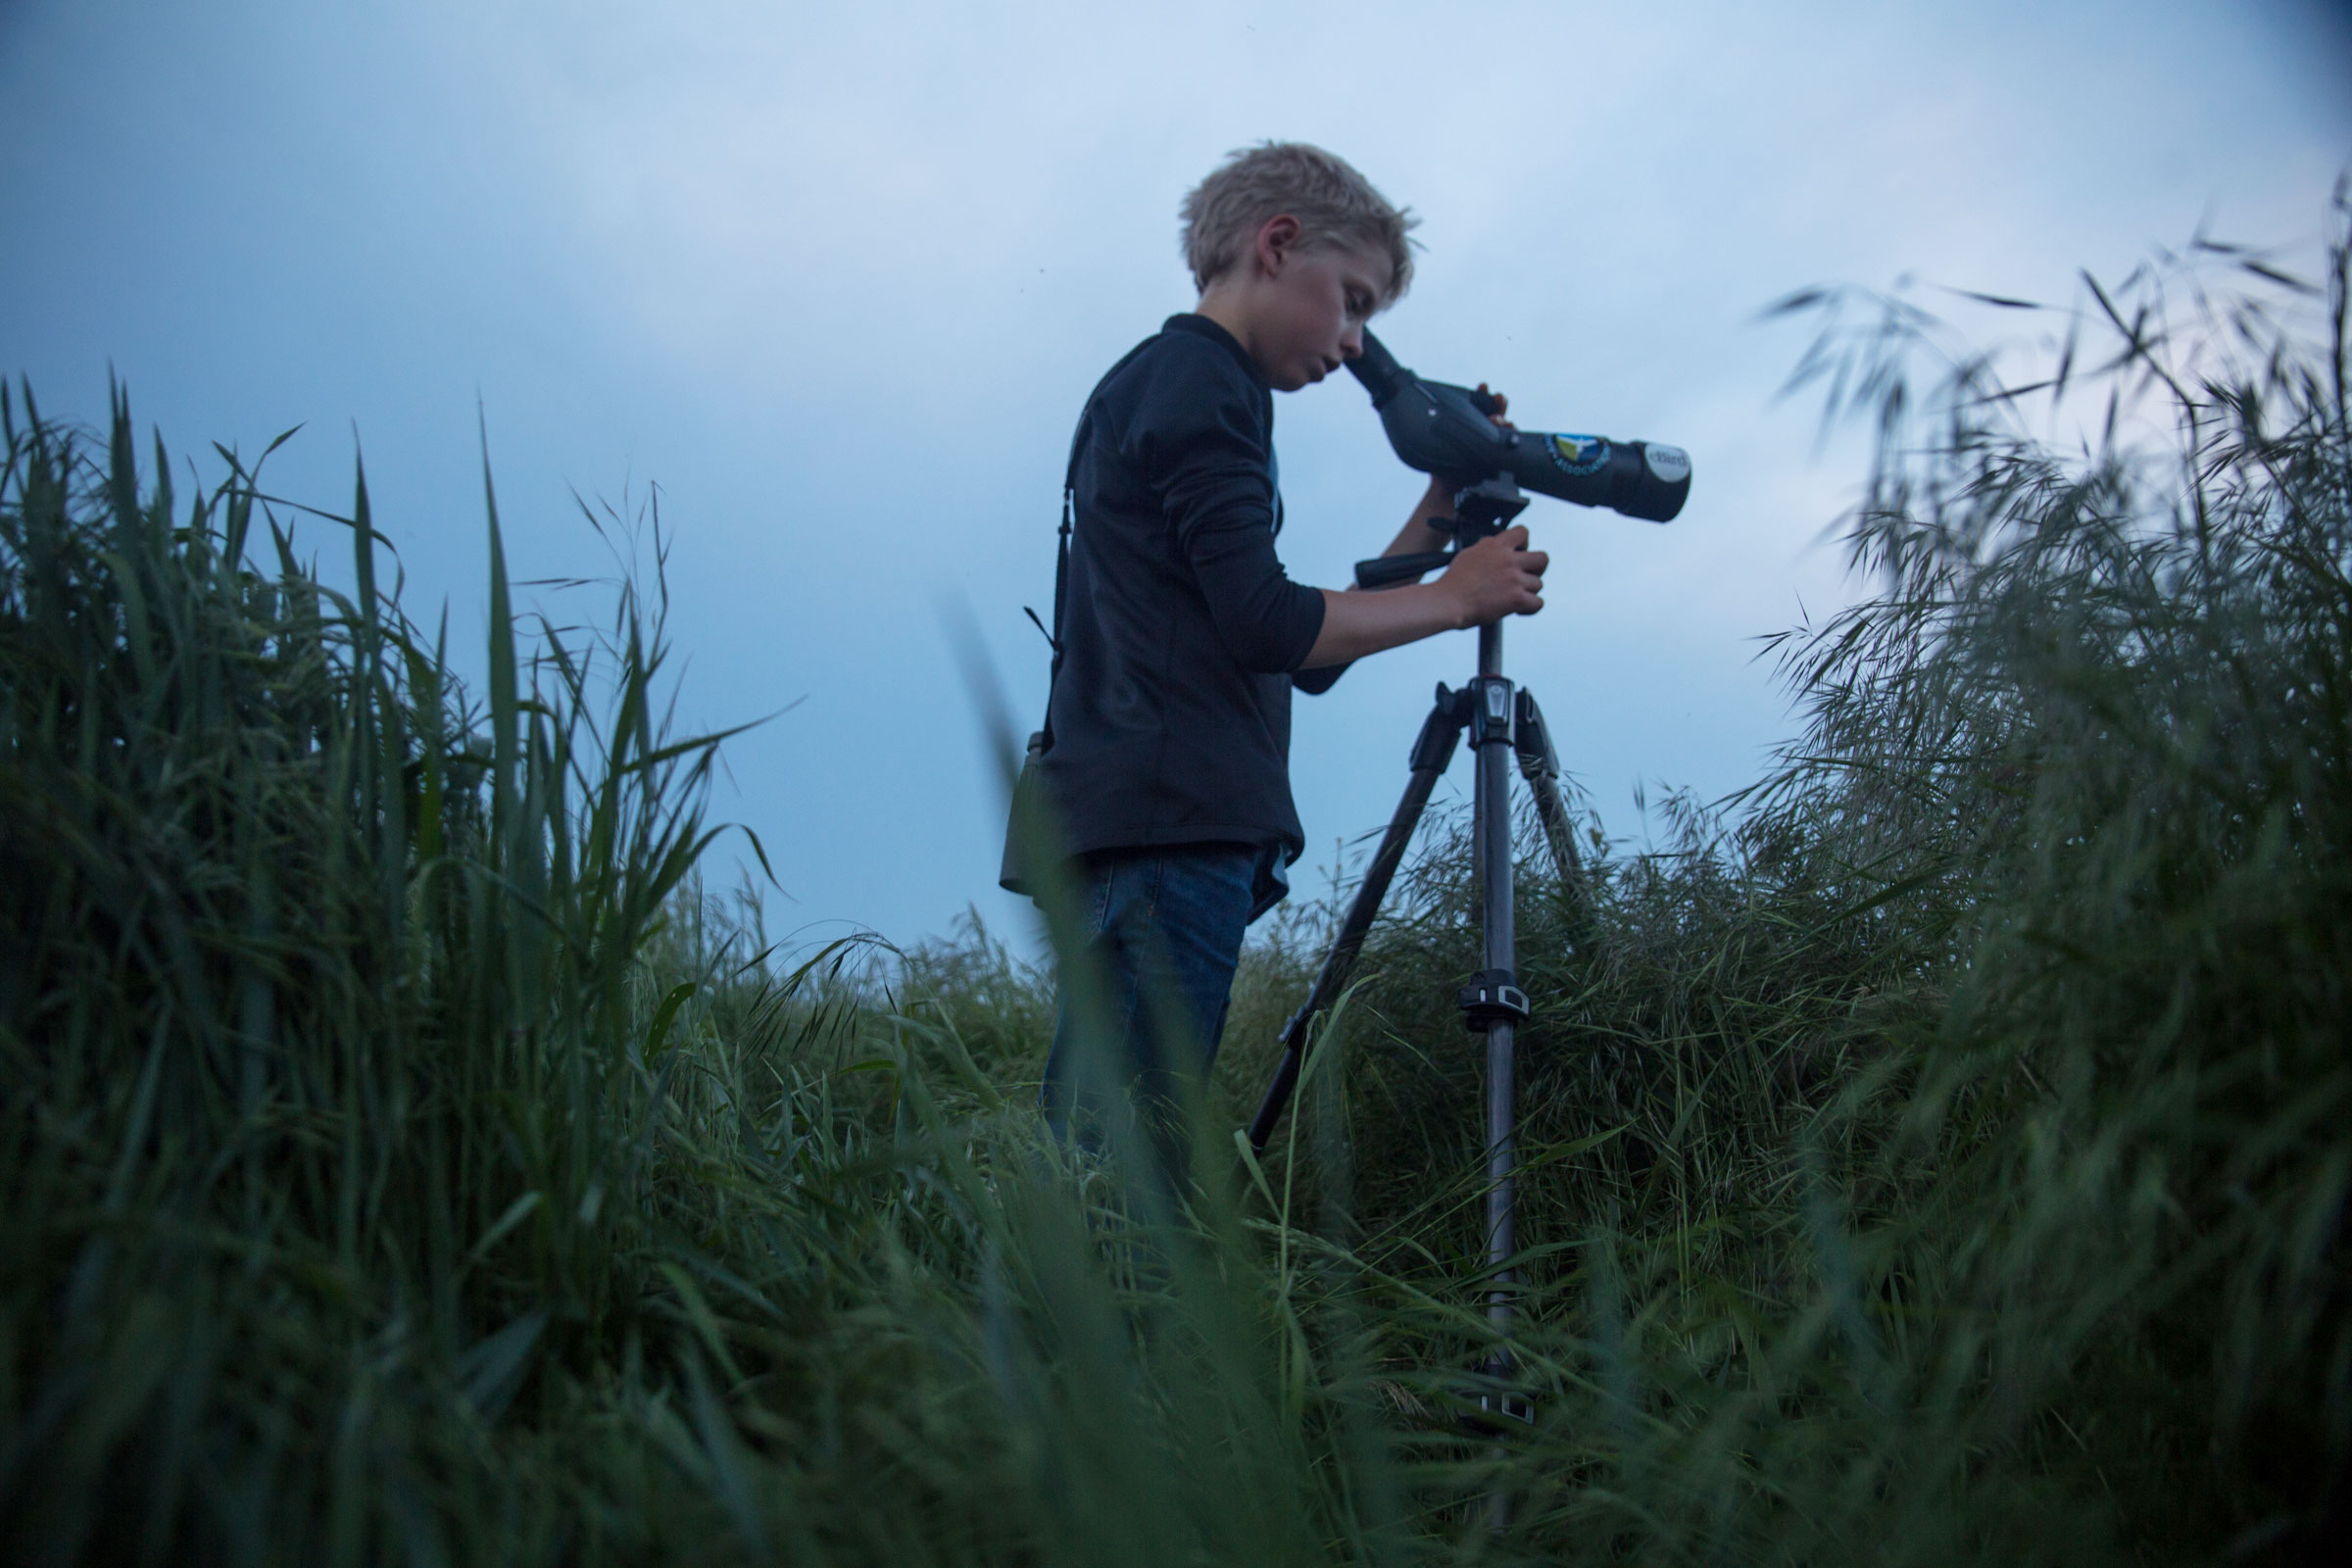 Jonathan Irons looks for an American Woodcock at dusk in Cape May. Camilla Cerea/Audubon